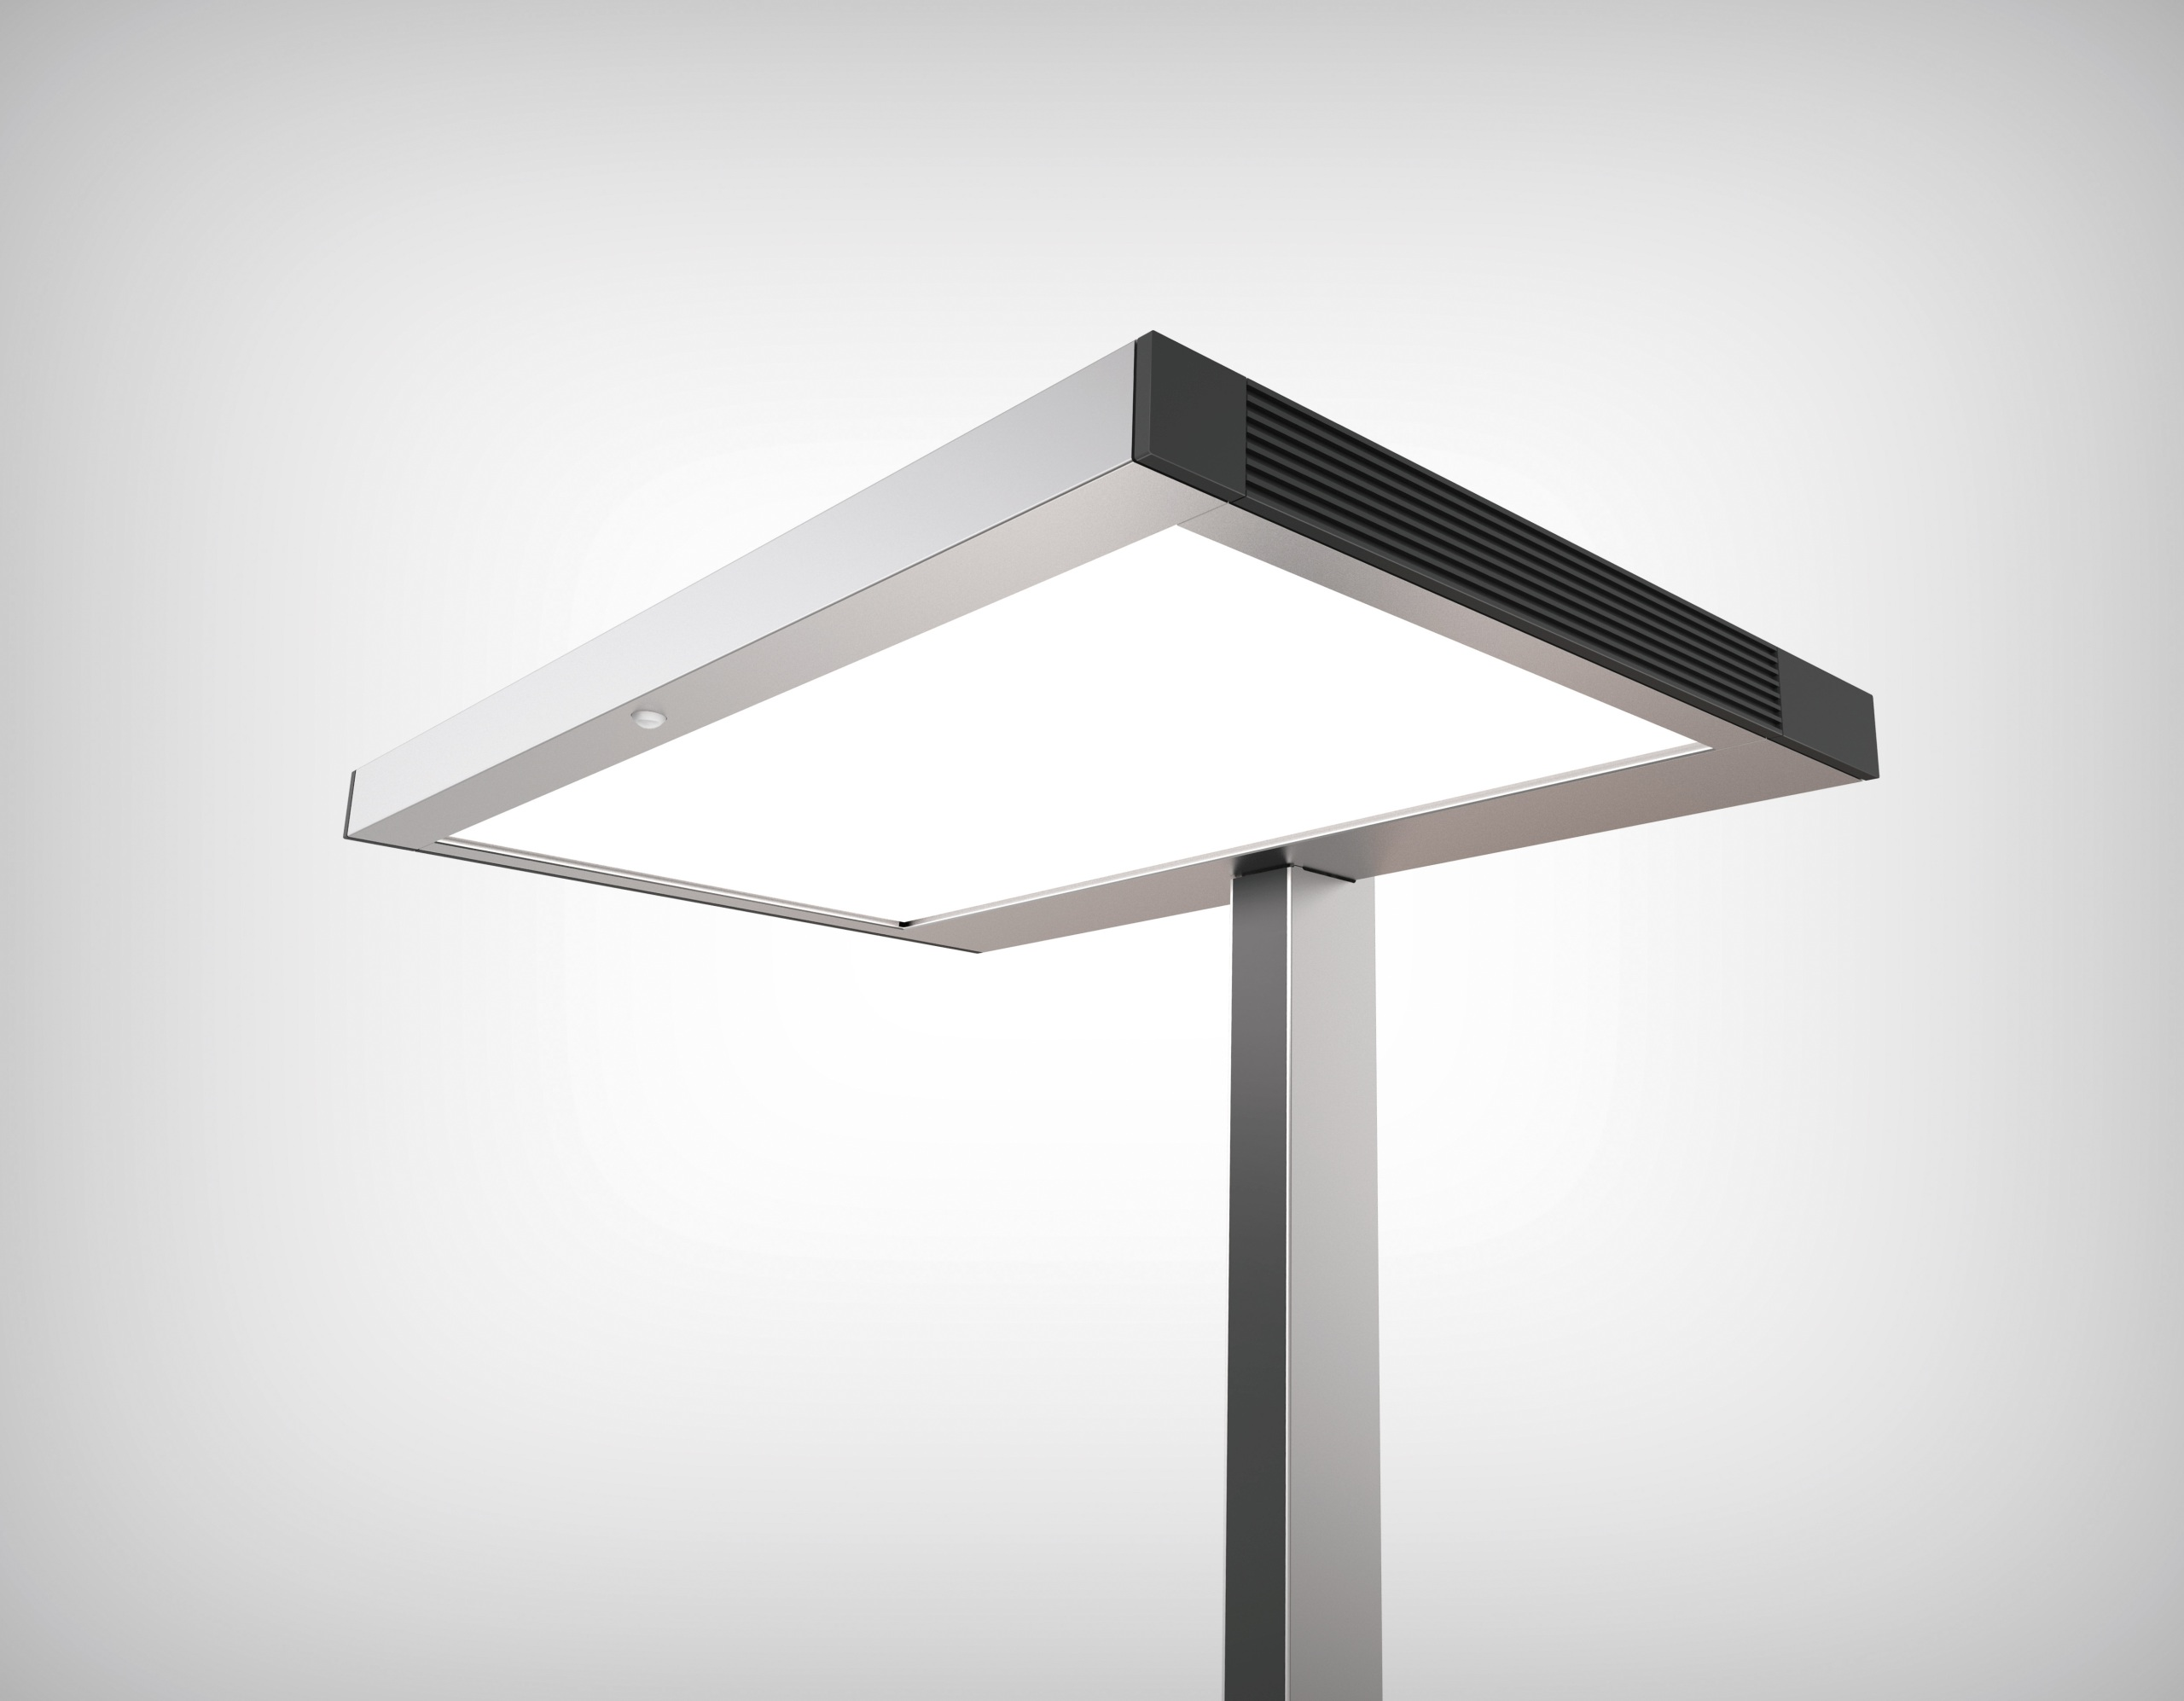 The New Floor Lamp Is Intended To Illuminate An Entire Office Room With  Both Direct And Indirect Light. VITAWORK® Is A Logical Continuation Of The  LUCTRA® ...